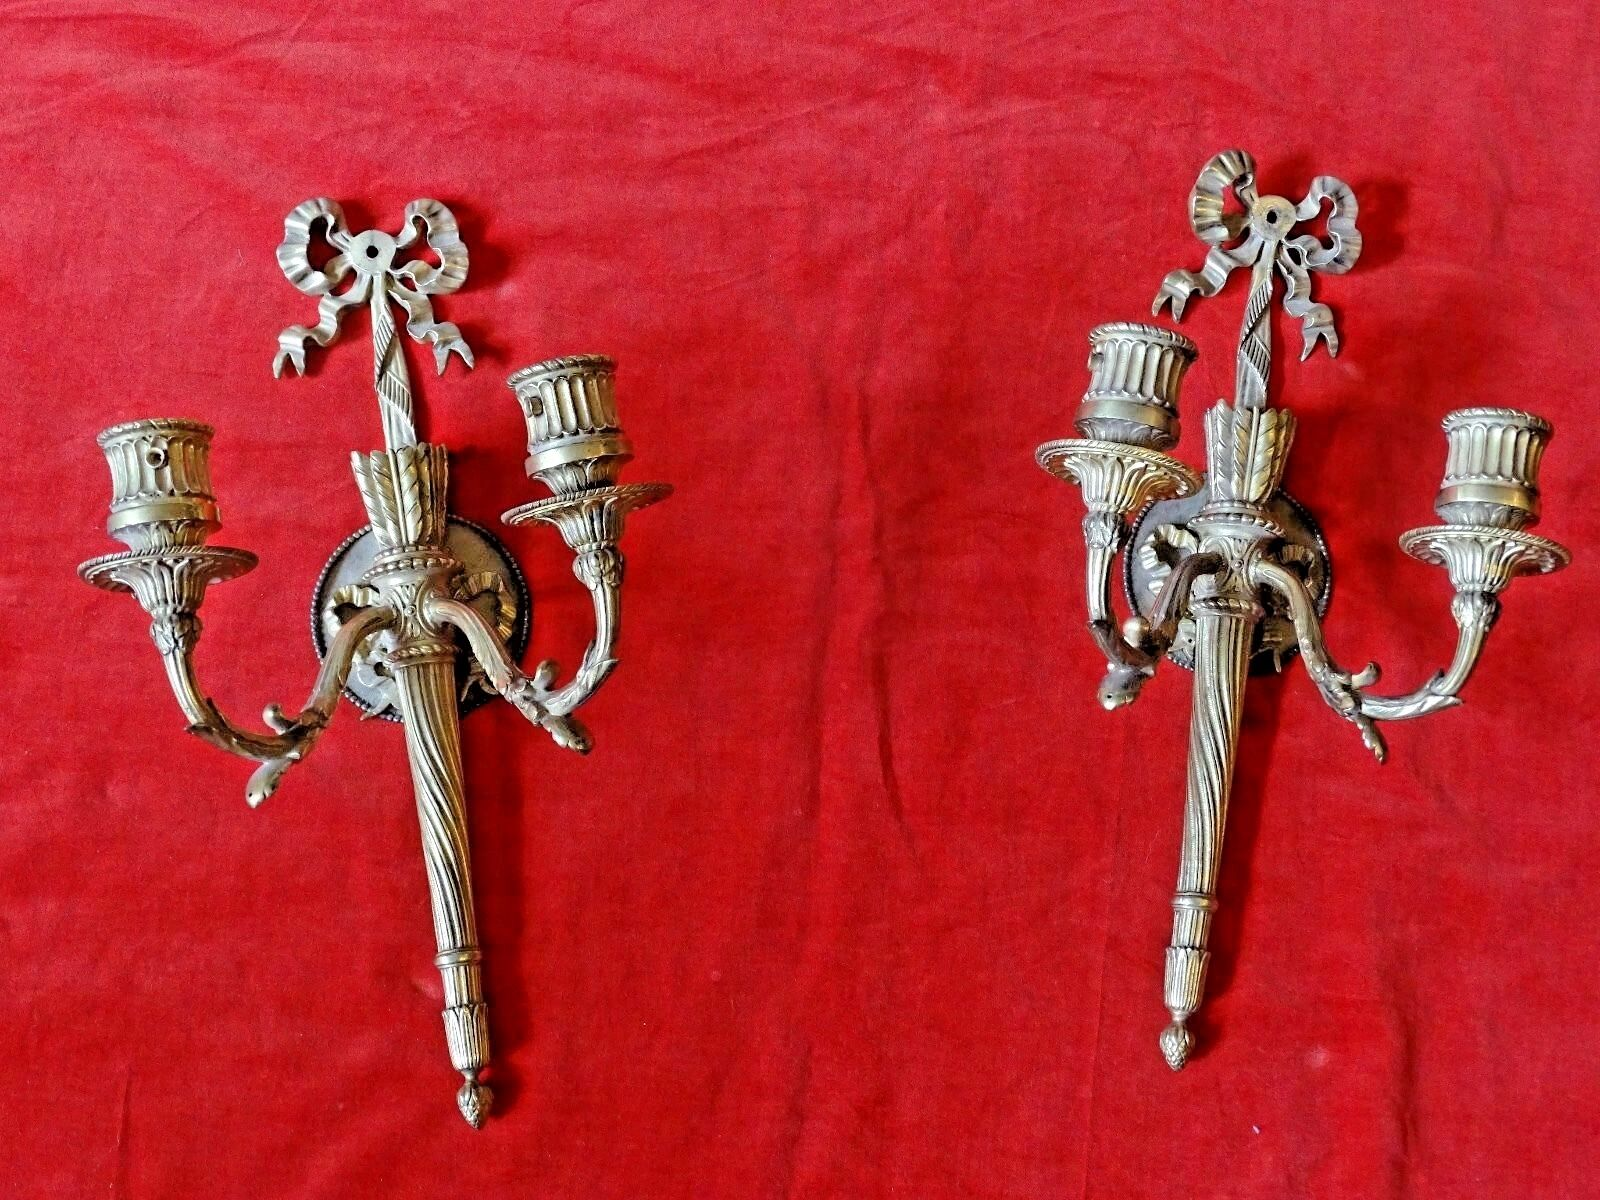 MAGNIFICENT ANTIQUE pair of ORNATE BRONZE WALL SCONCES SUPERIOR QUALITY lighting